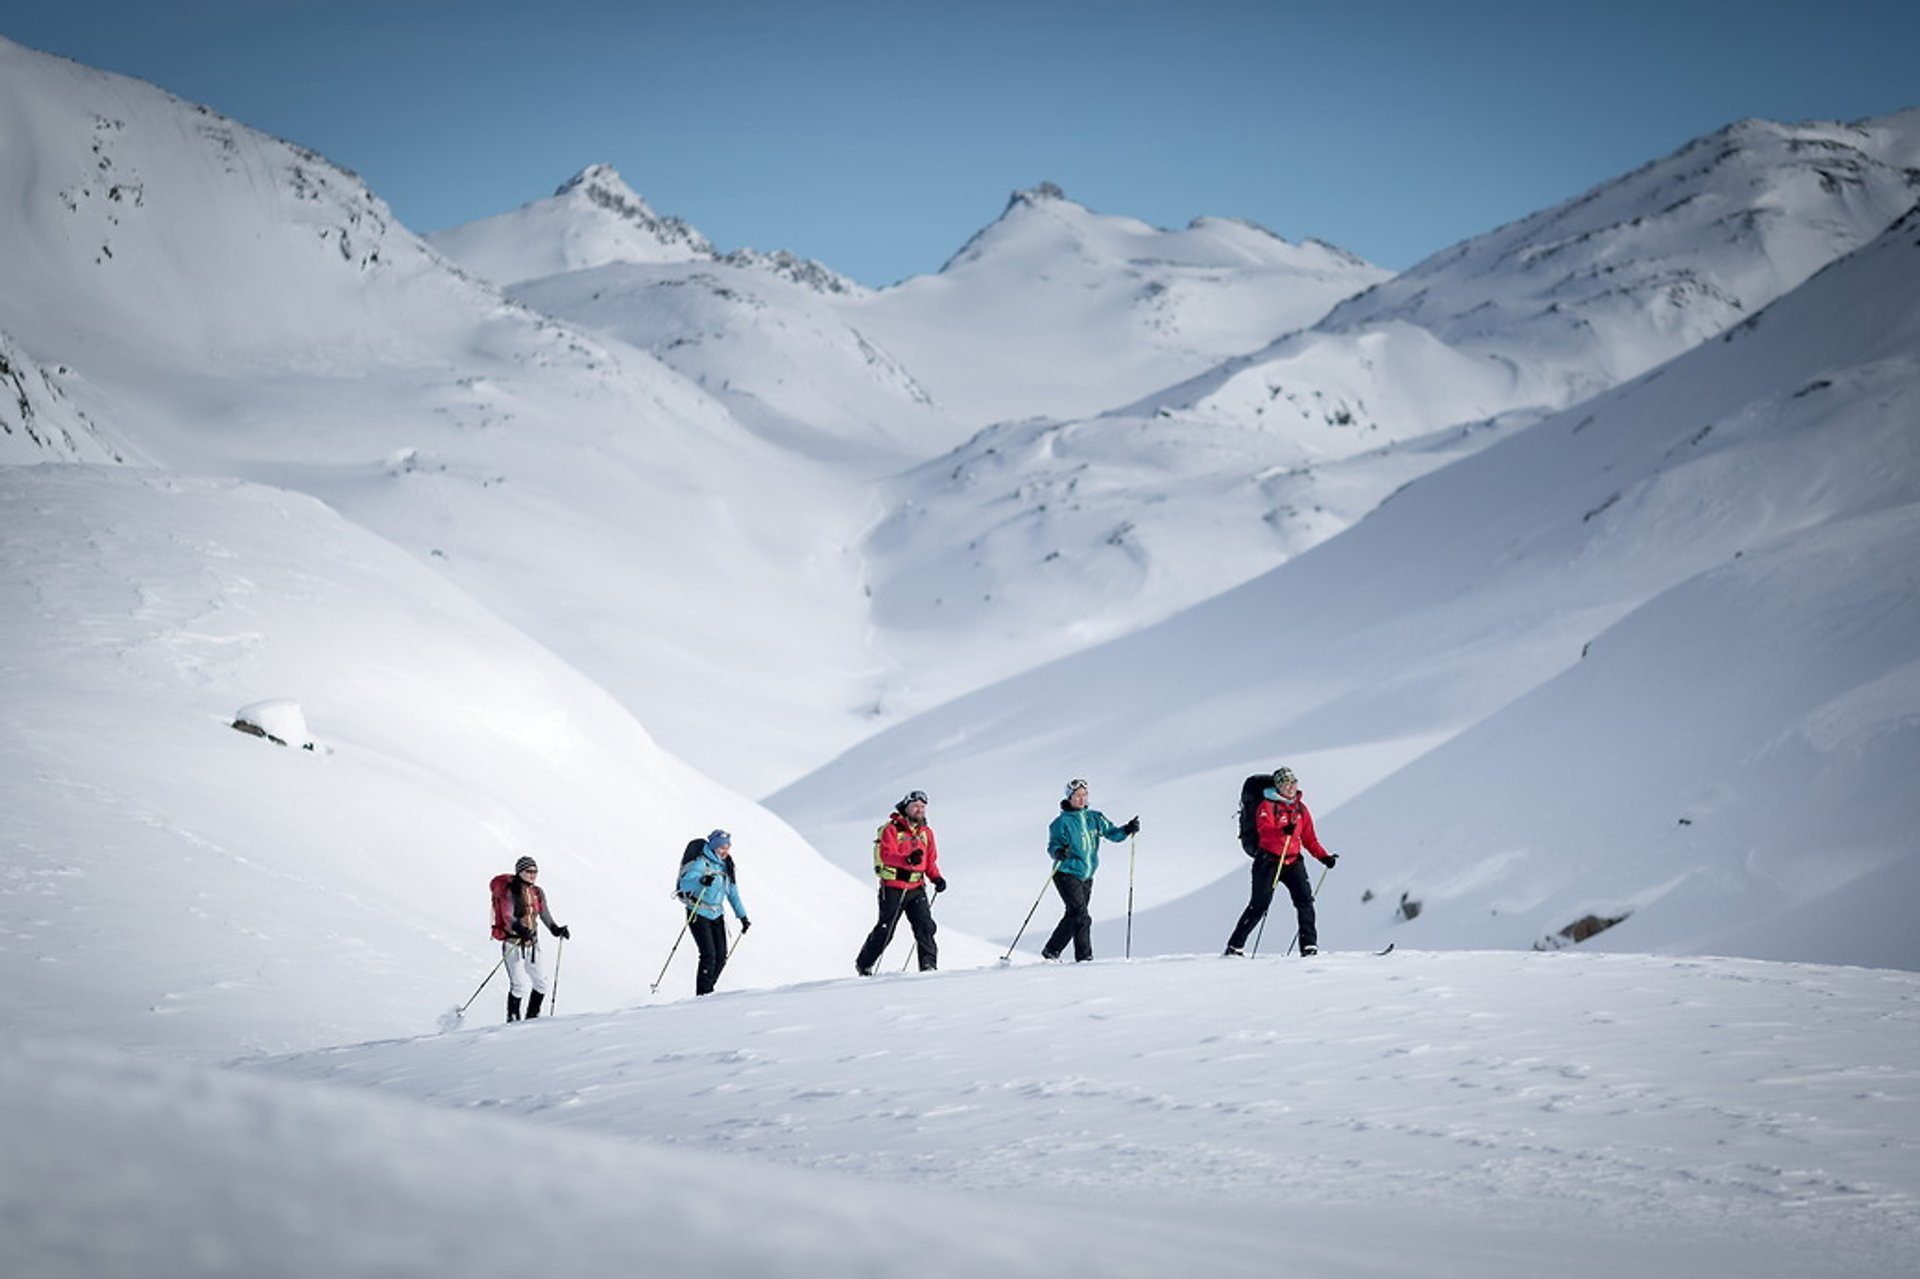 Backcountry skiing in the Tasiilaq area in East Greenland 2020